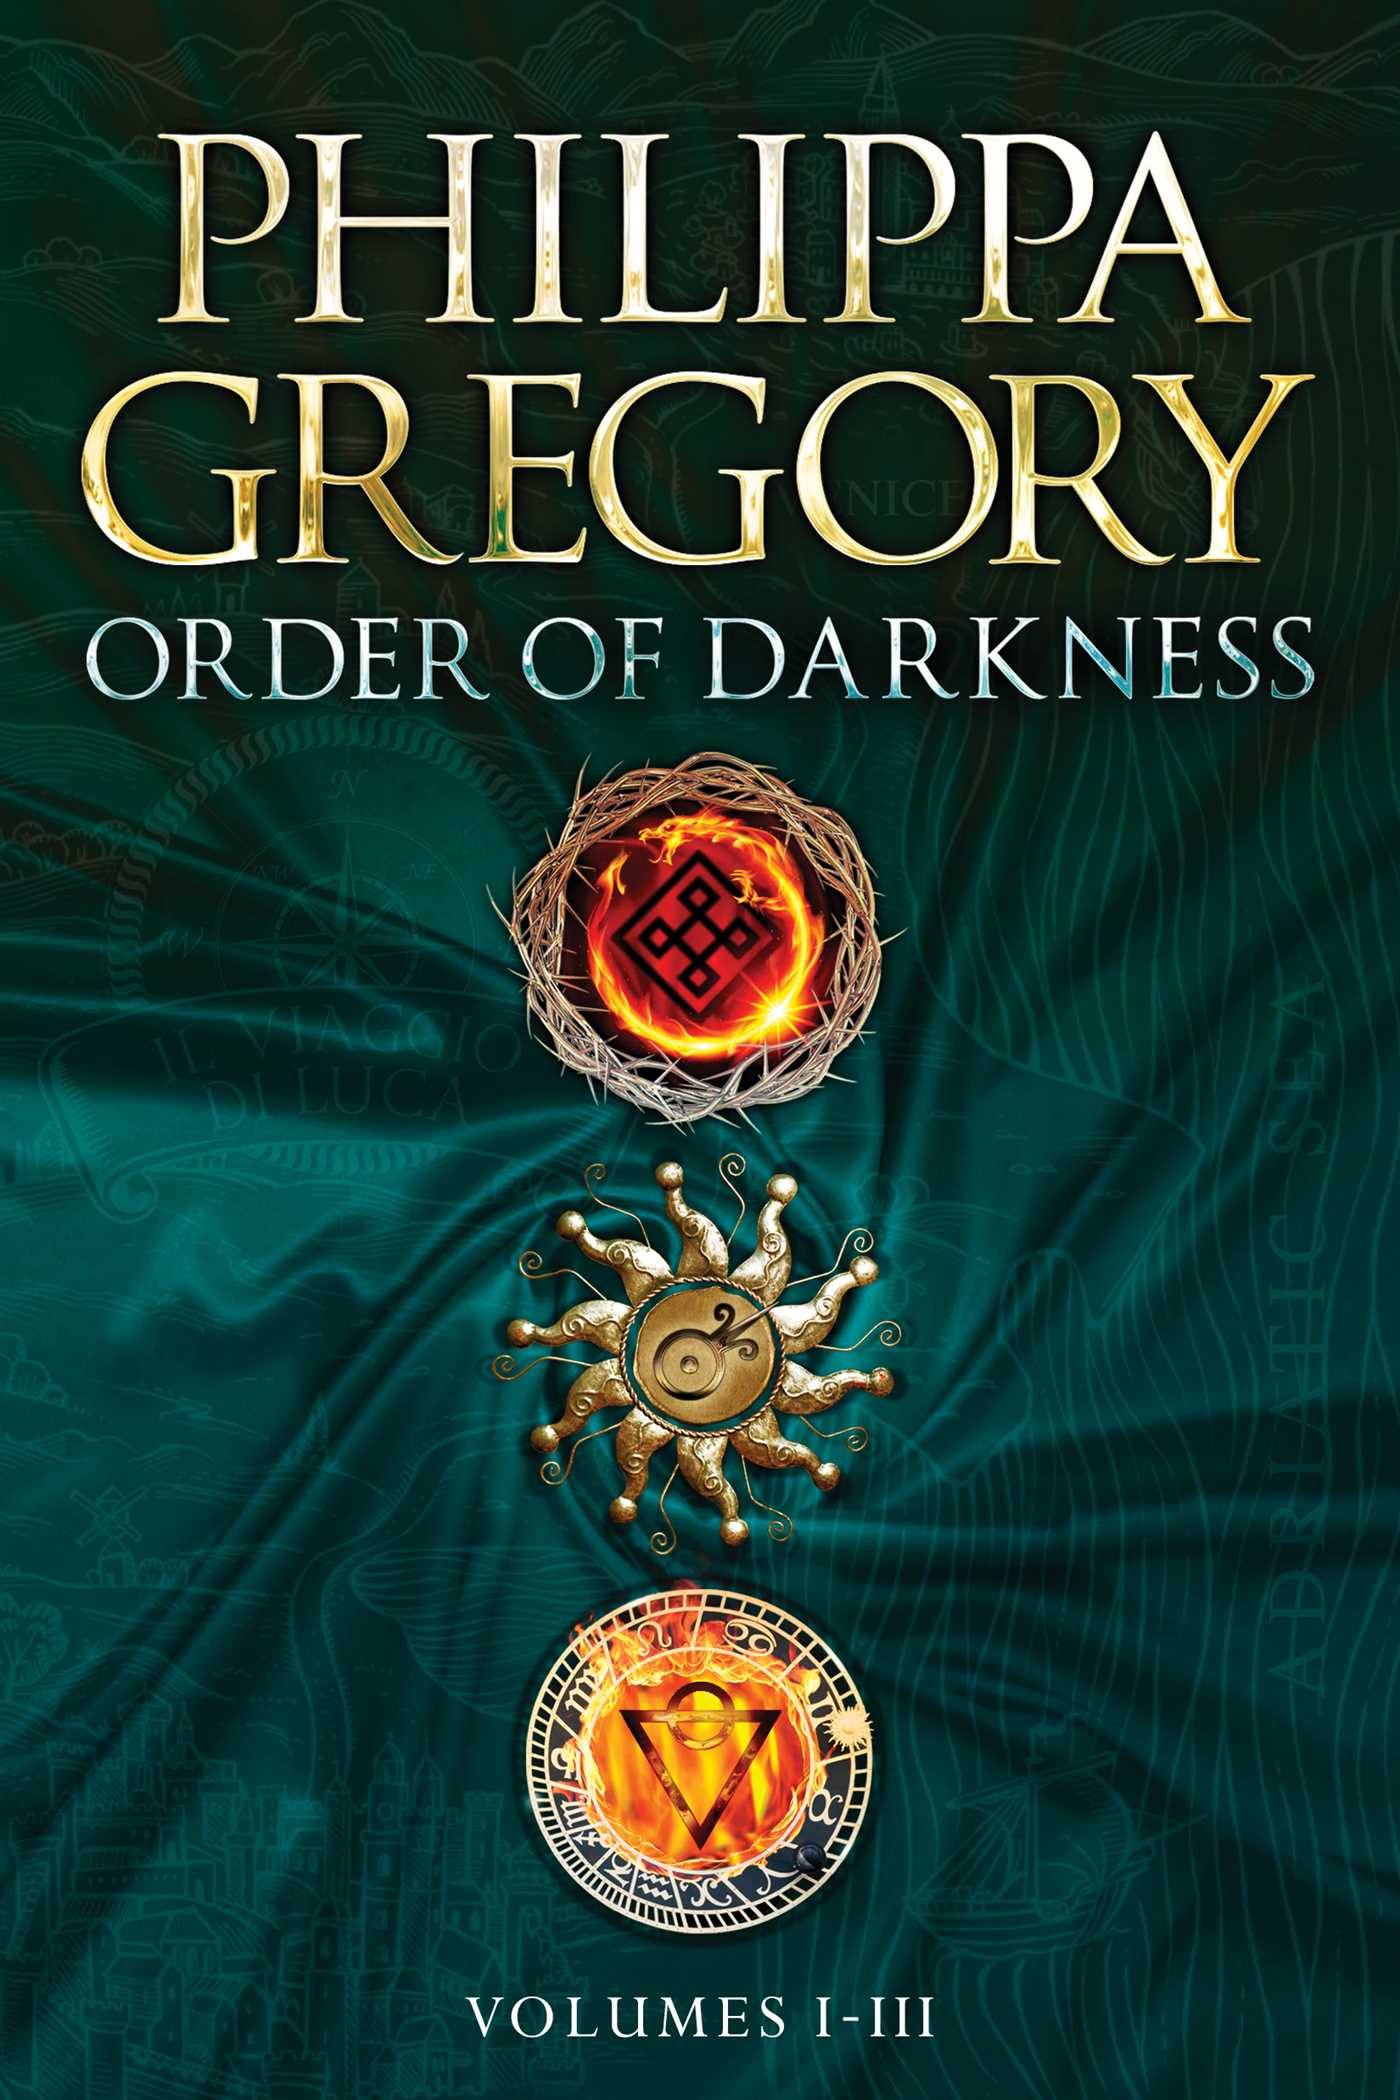 Order of darkness volumes i iii 9781534406551 hr